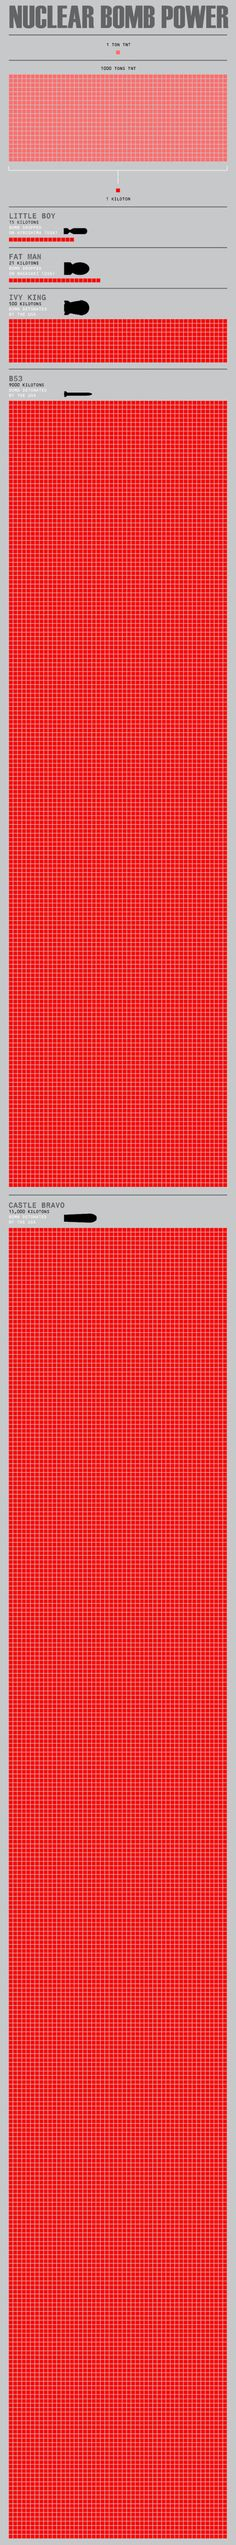 The Horrifying Power of Today's Nuclear Bombs infographic by Maximilian Bode (posted on fastcodesign.com) puts the power of the Tsar bomb into painful perspective.